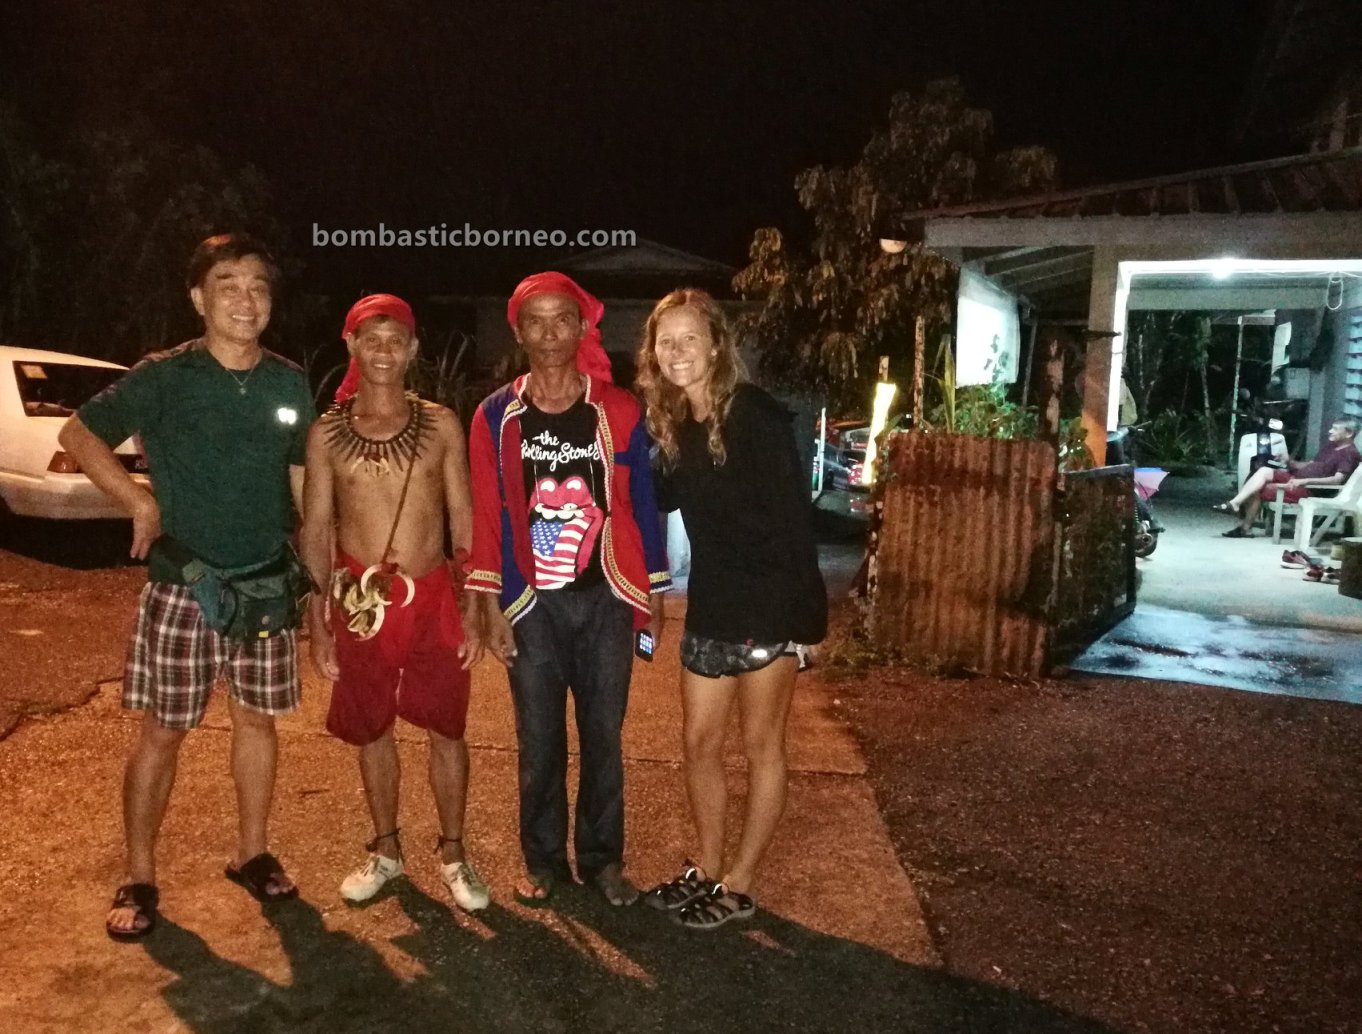 Bidayuh village, harvest festival, backpackers, destination, Borneo, Kuching, Bau, budaya, culture, ethnic, native, tribe, tourist attraction, 婆罗洲游踪, 砂拉越达雅丰收节日